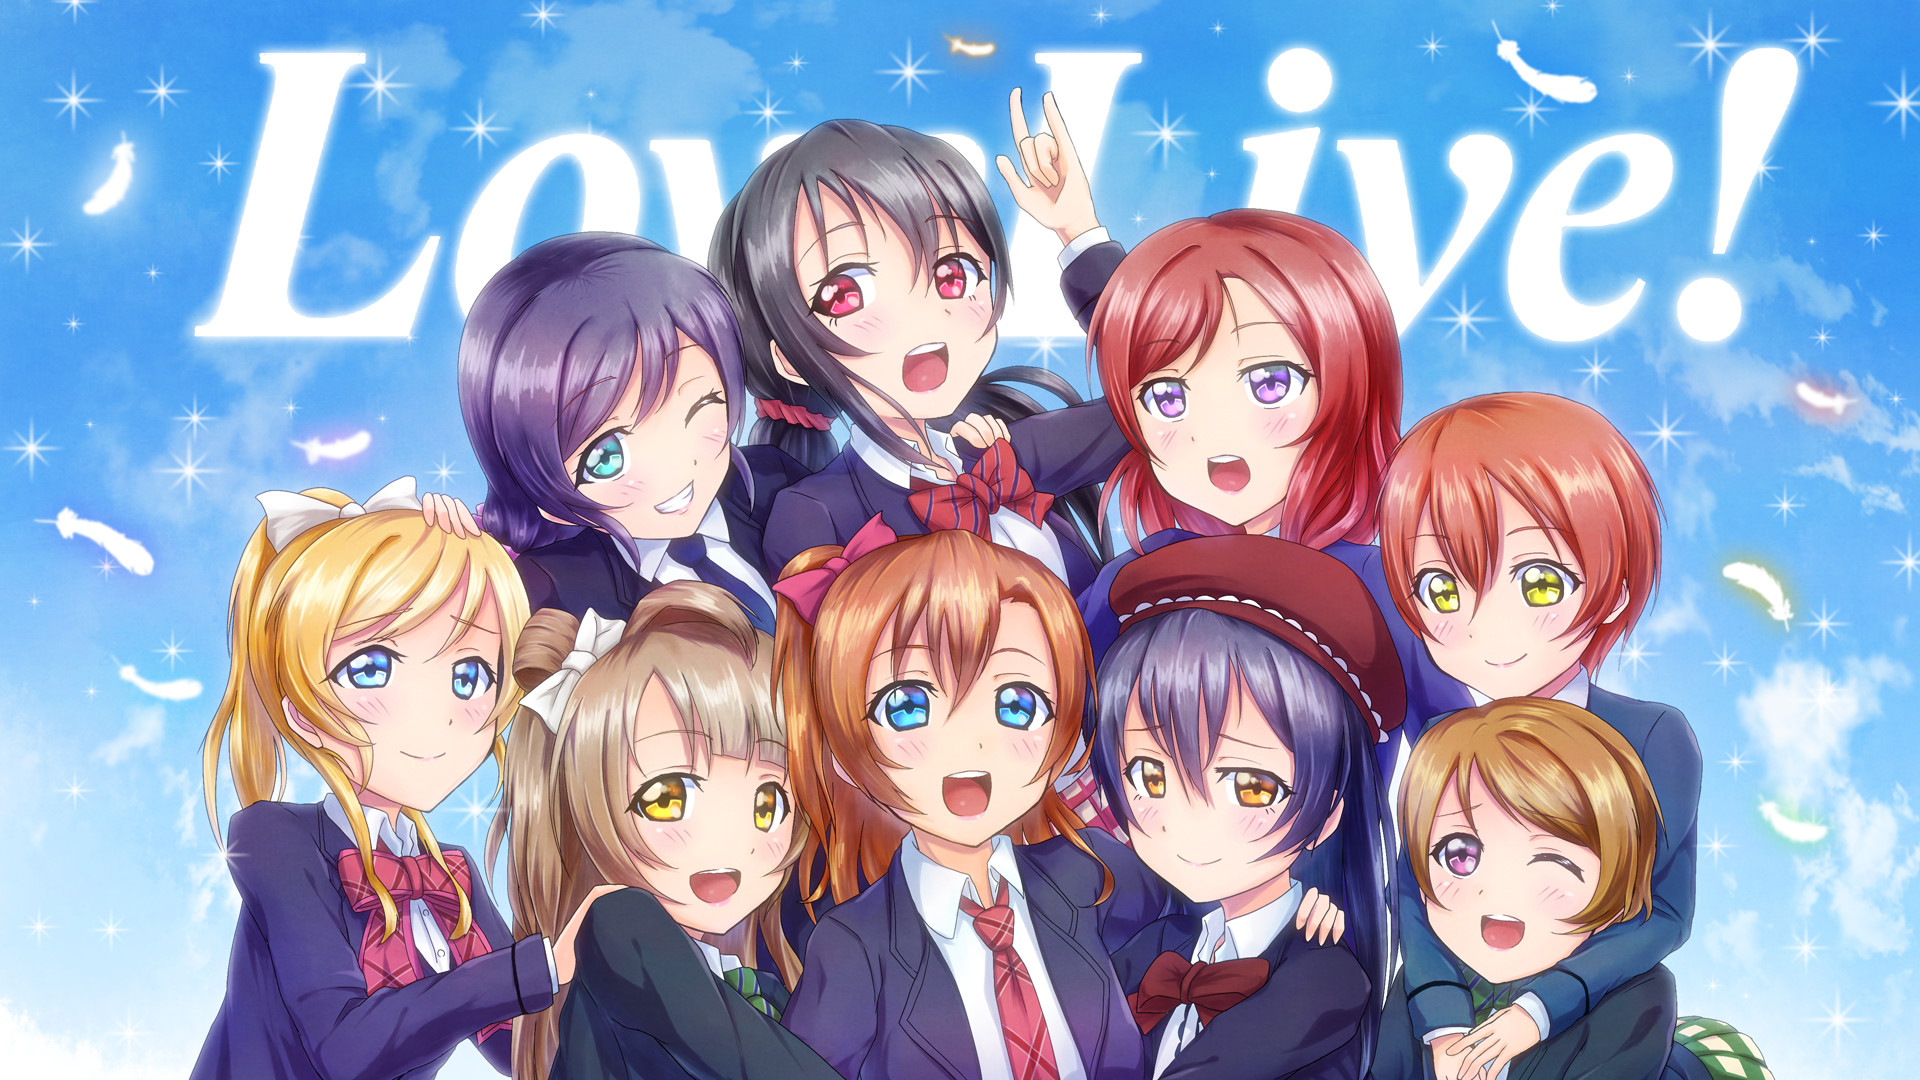 Love live wallpaper 75 images - Love wallpaper 2048x1152 ...